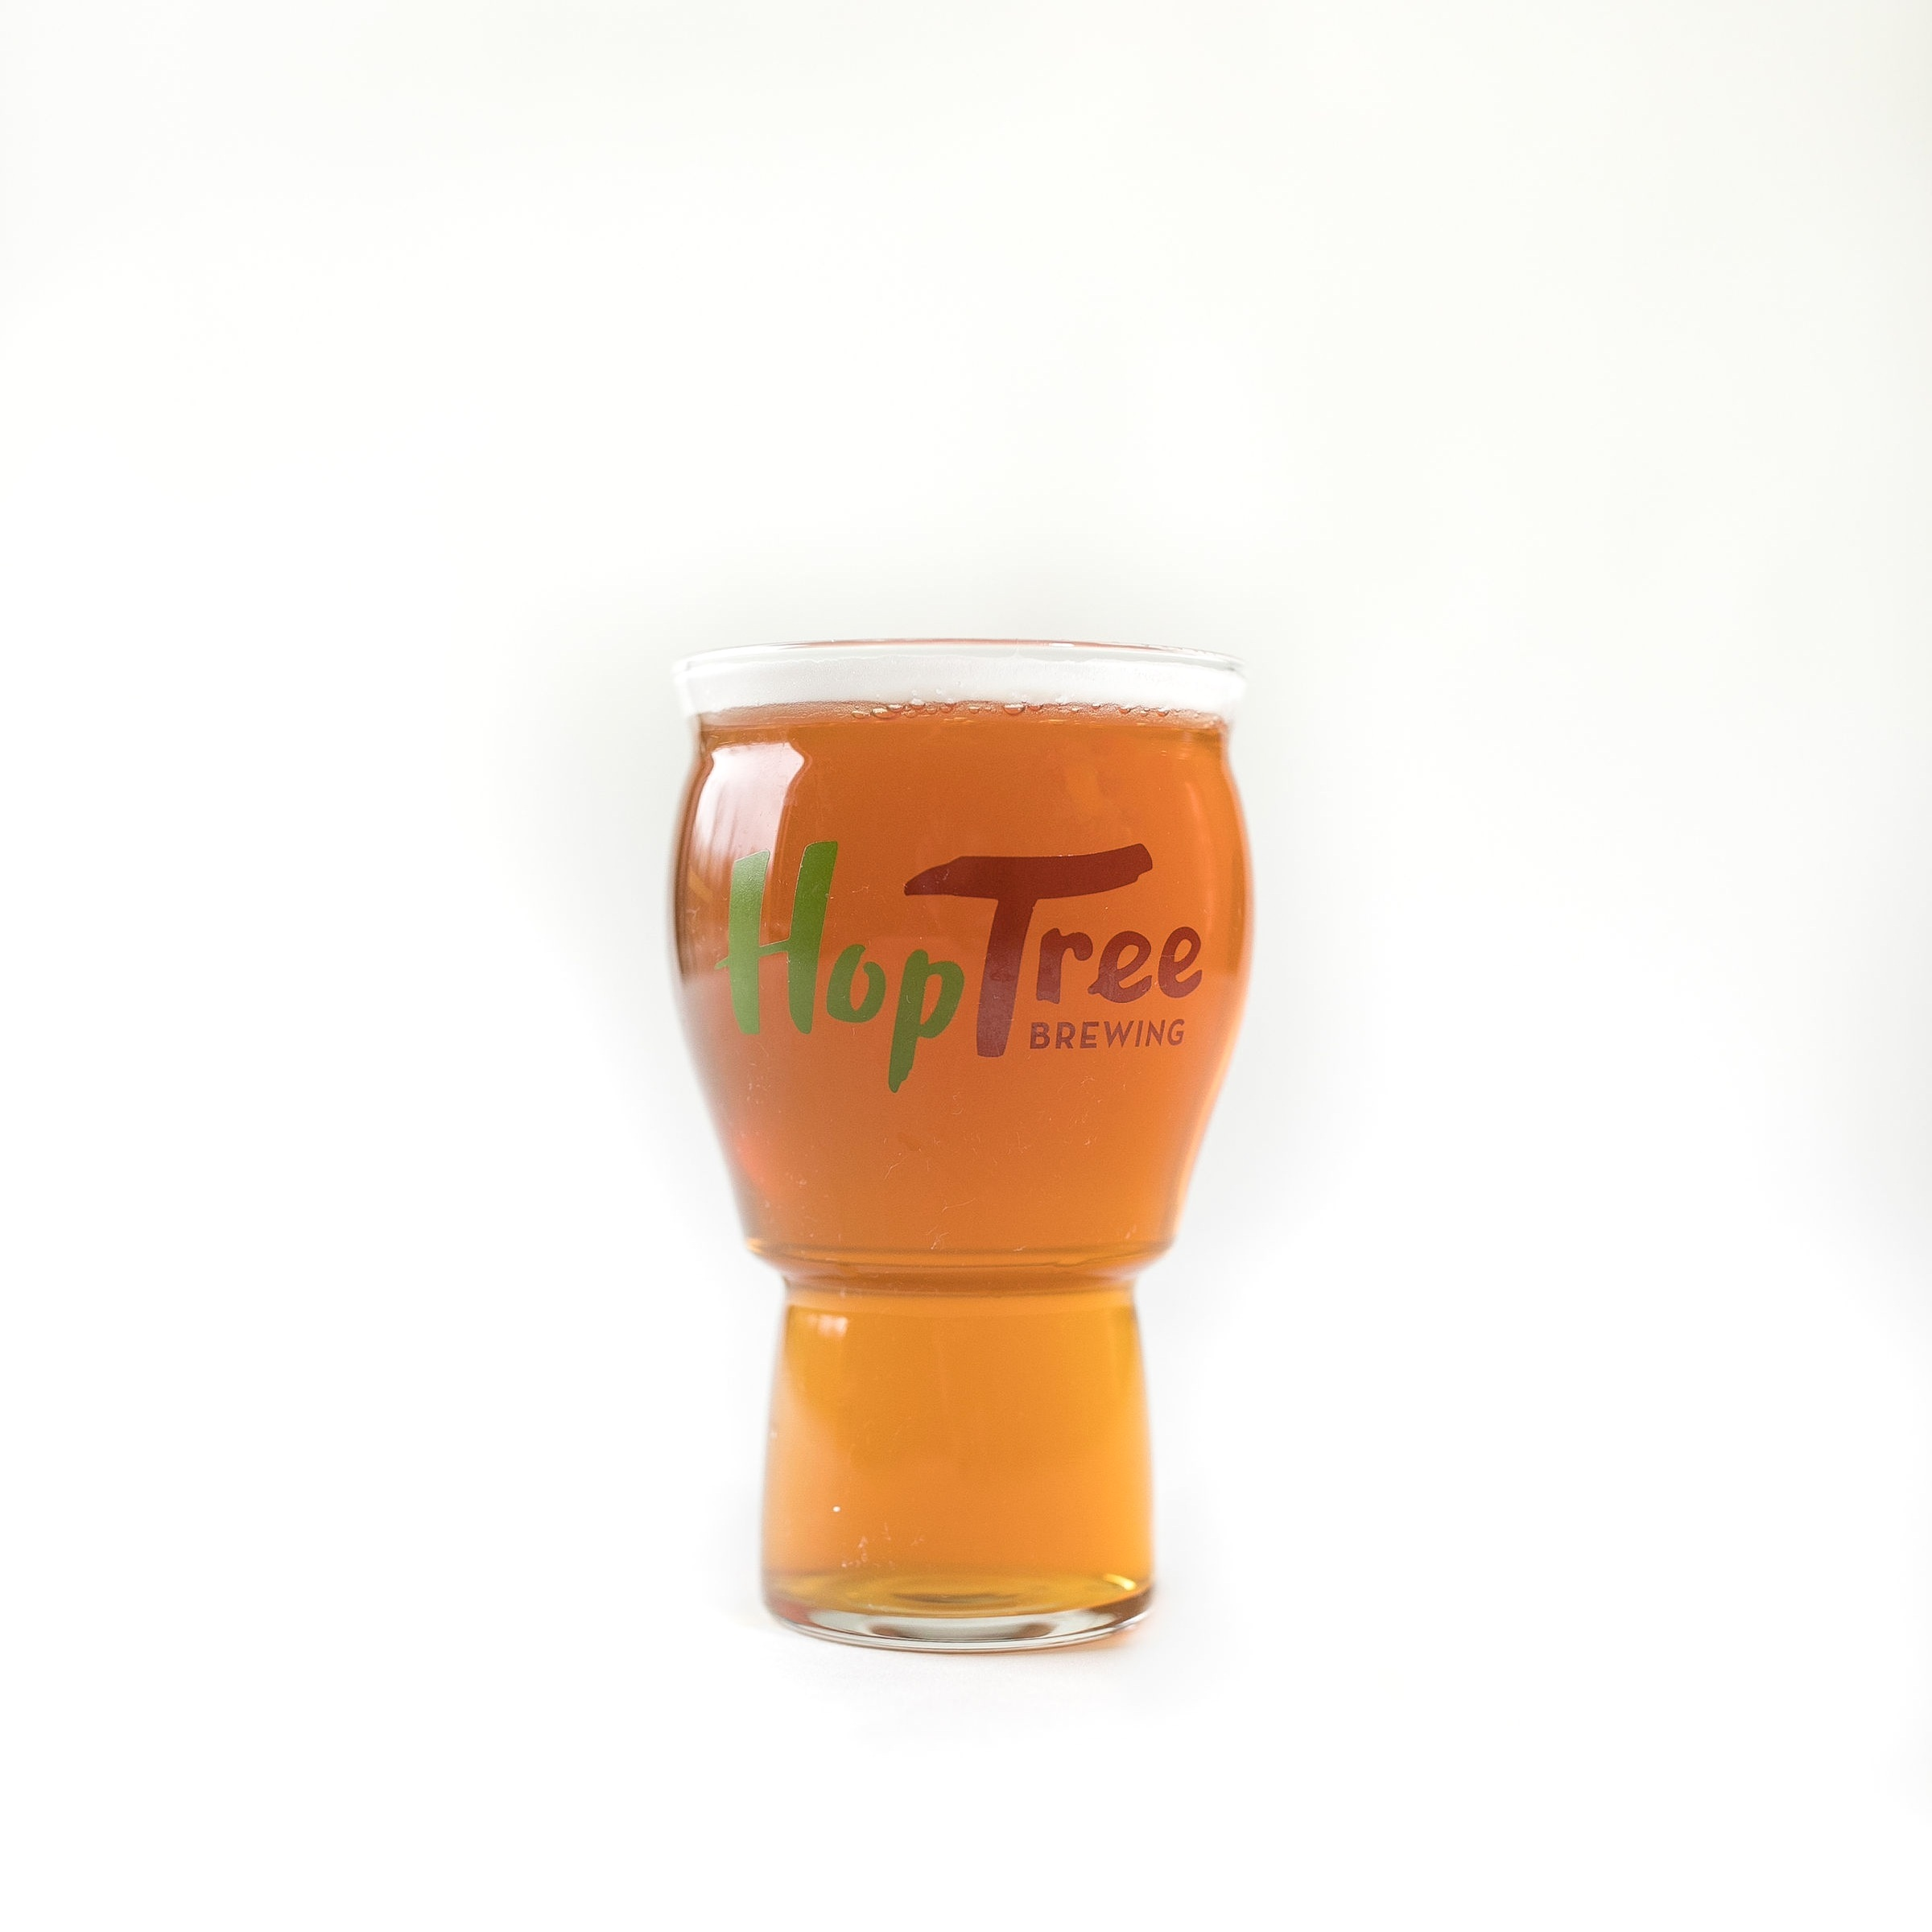 hop tree IPA - 6.5% ABV 61 IBUsOur North East Ohio IPA created with water from our private aquifer and a blend of Amarillo and Citra hops